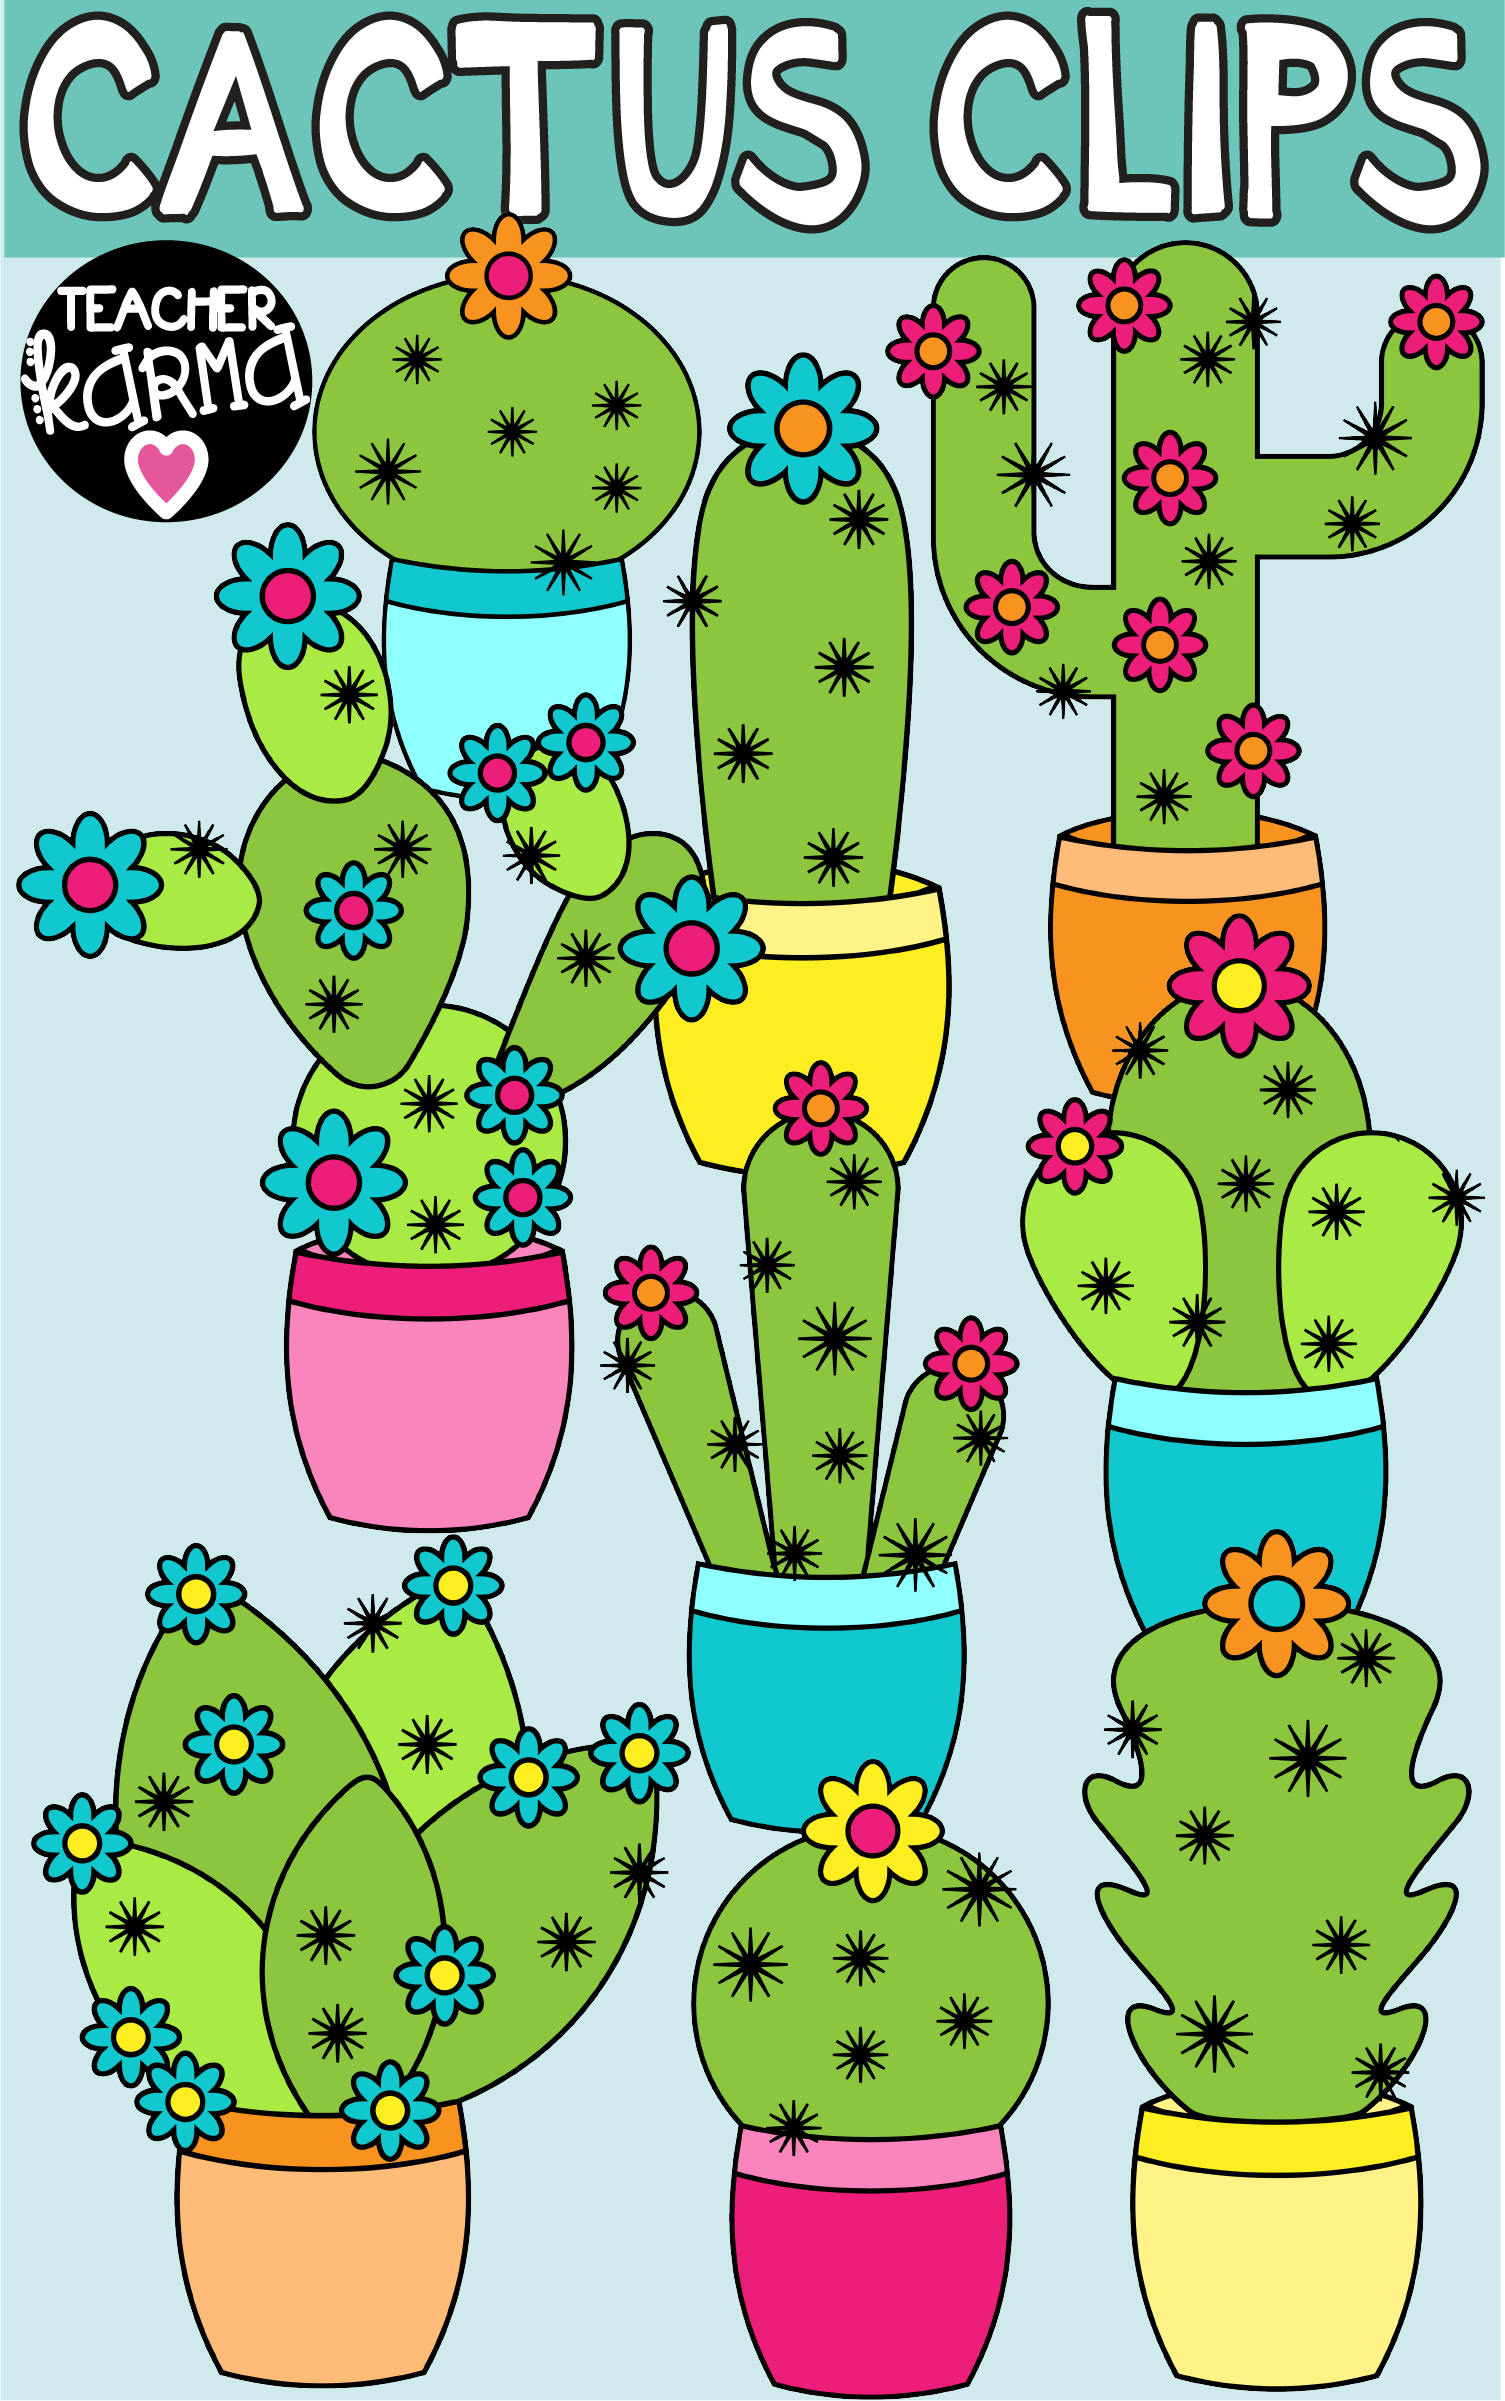 cactus clipart is perfect for classroom decor teacher organization or to create products to sell on tpt cacti graphics are ok for commercial use  [ 1505 x 2401 Pixel ]